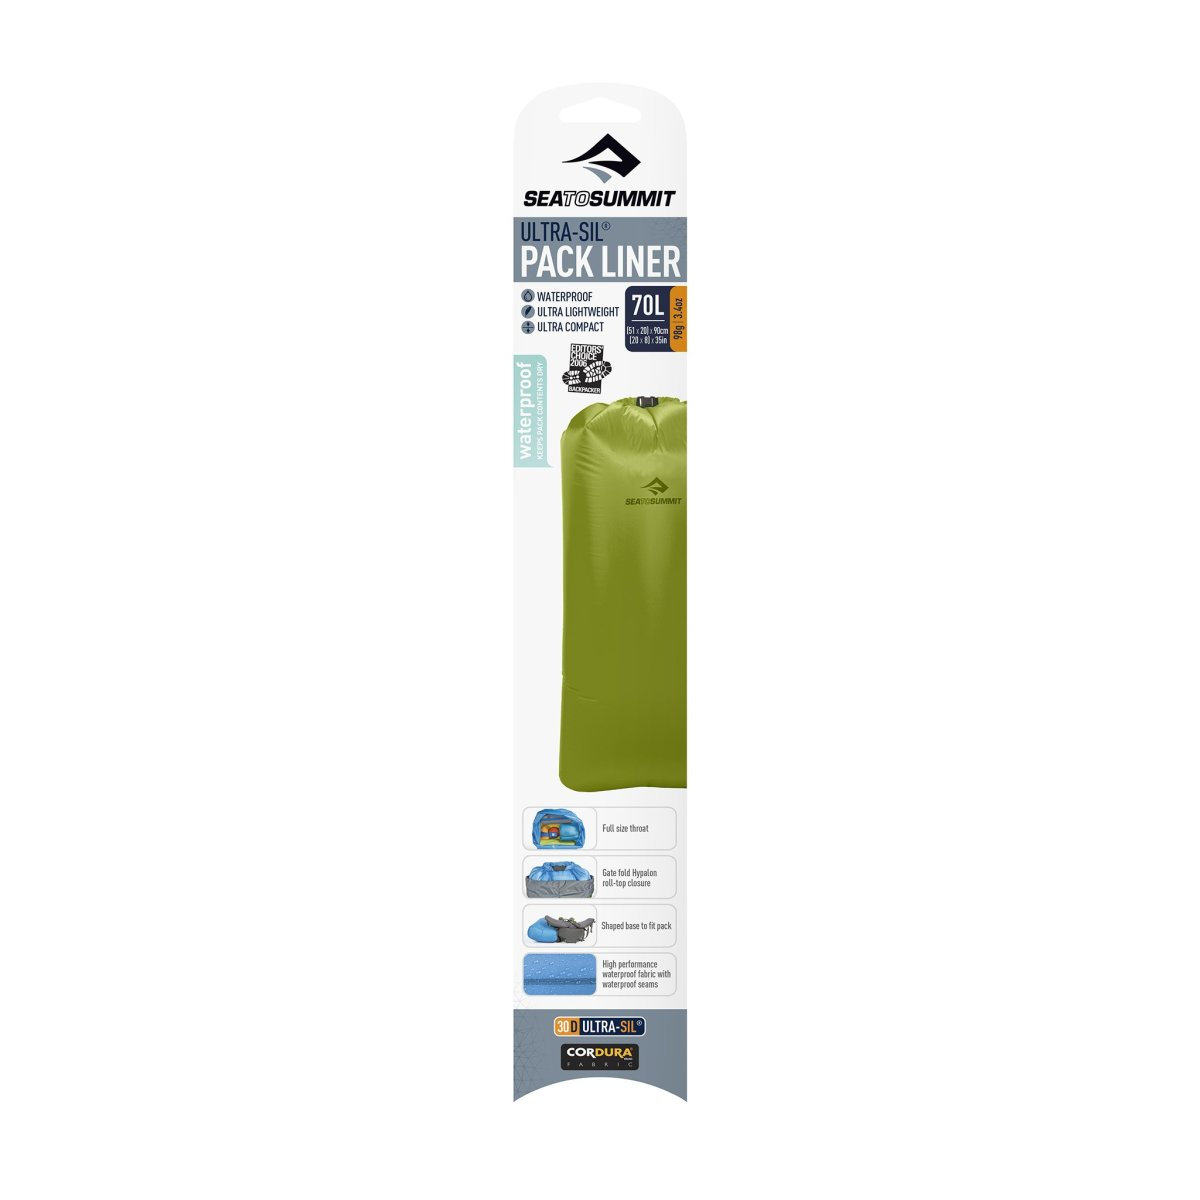 Гермочехол Sea to summit Ultra-Sil Pack Liner Green, M Ге1рмочехол Sea to summit Ultra-Sil Pack Liner Green, M 2 STS APLUMGN